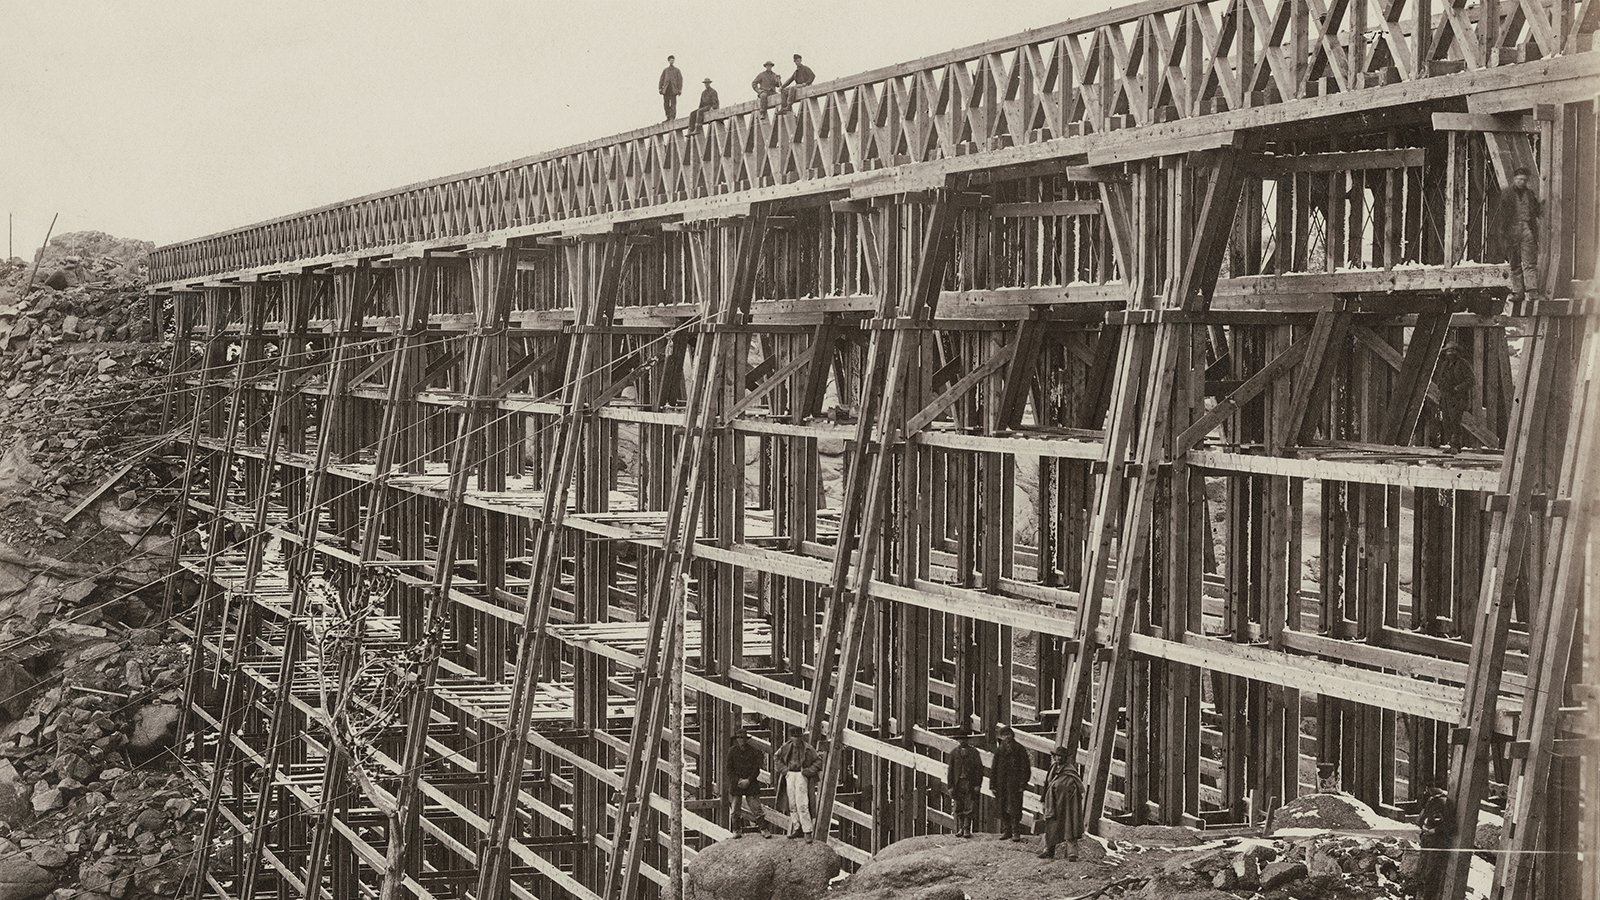 Construction of Dale Creek Bridge along the Union Pacific Railroad